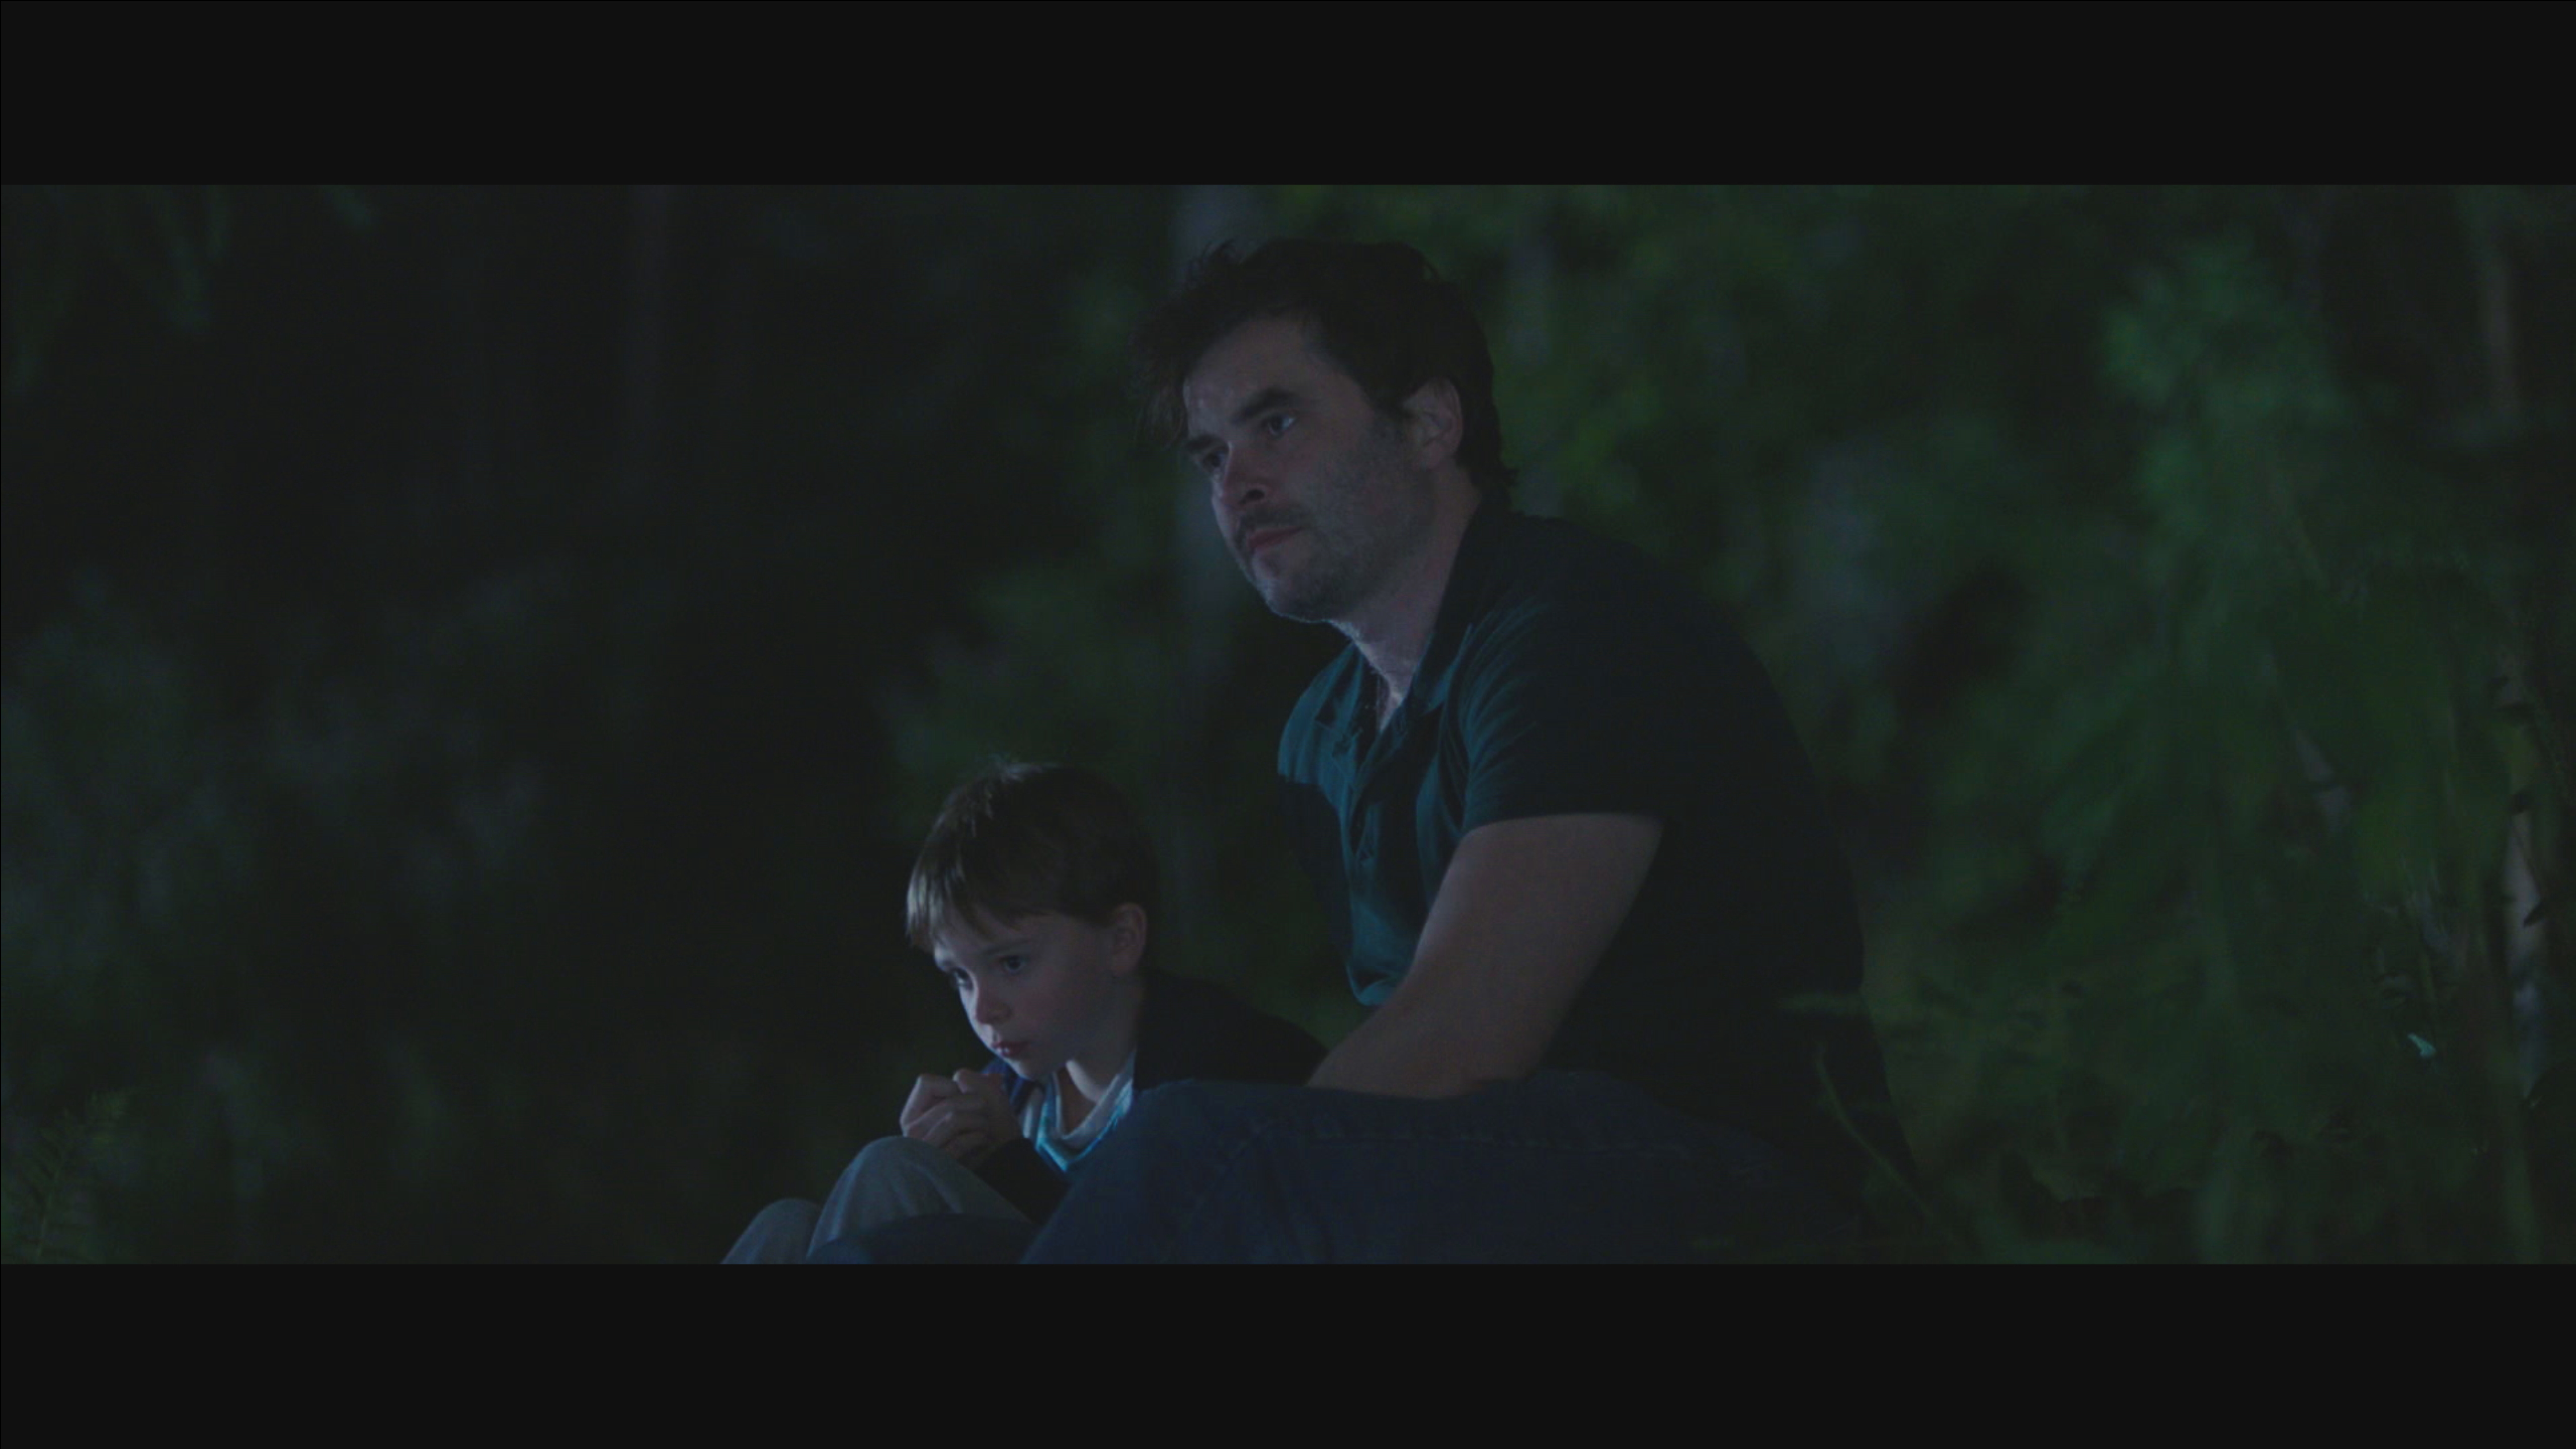 Part 3 - Making Noise Quietly